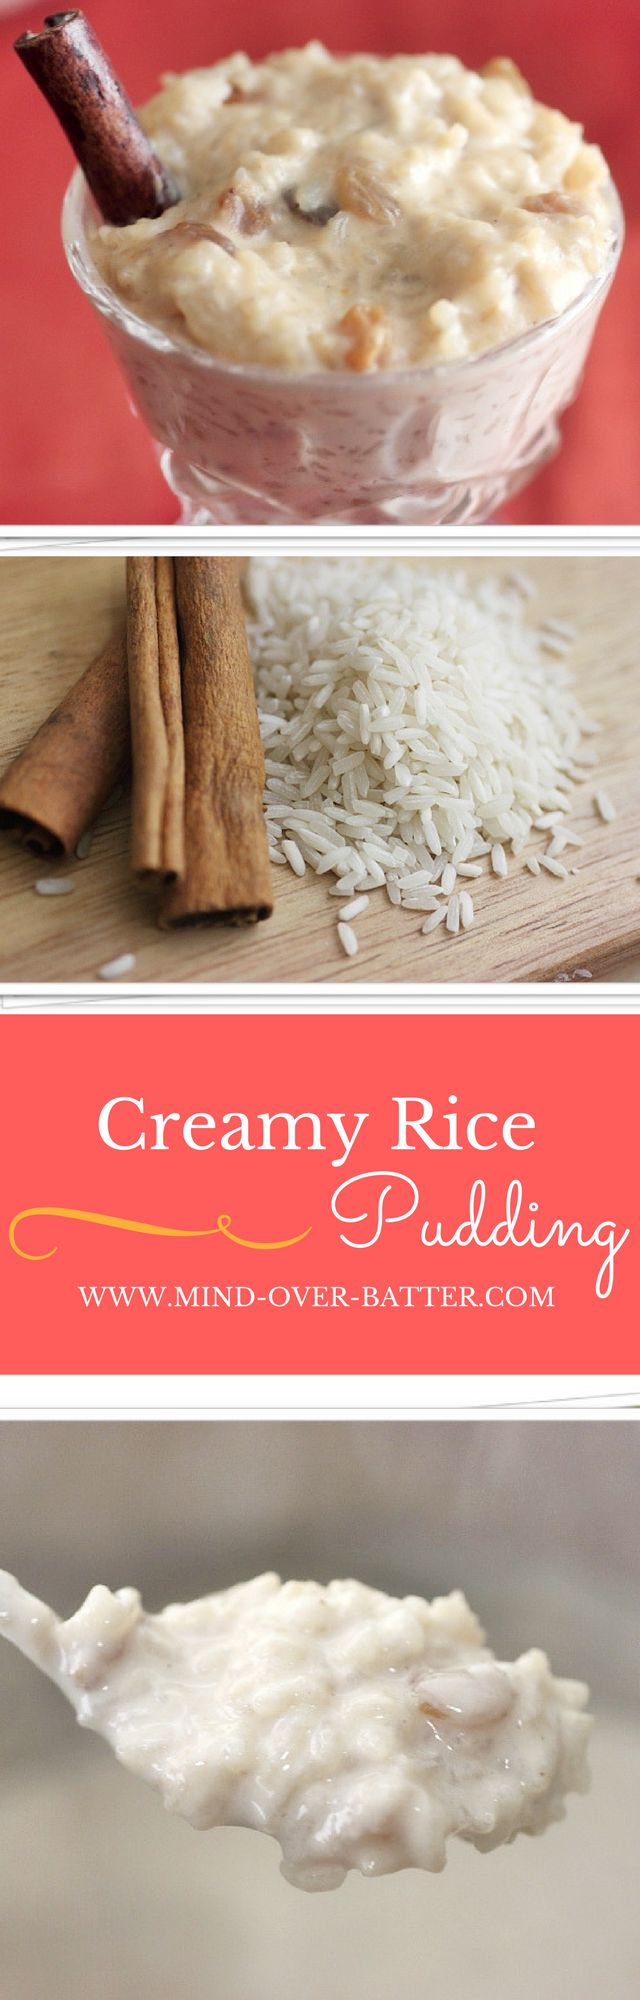 Creamy Rice Pudding (Arroz con Leche) www.mind-over-batter.com